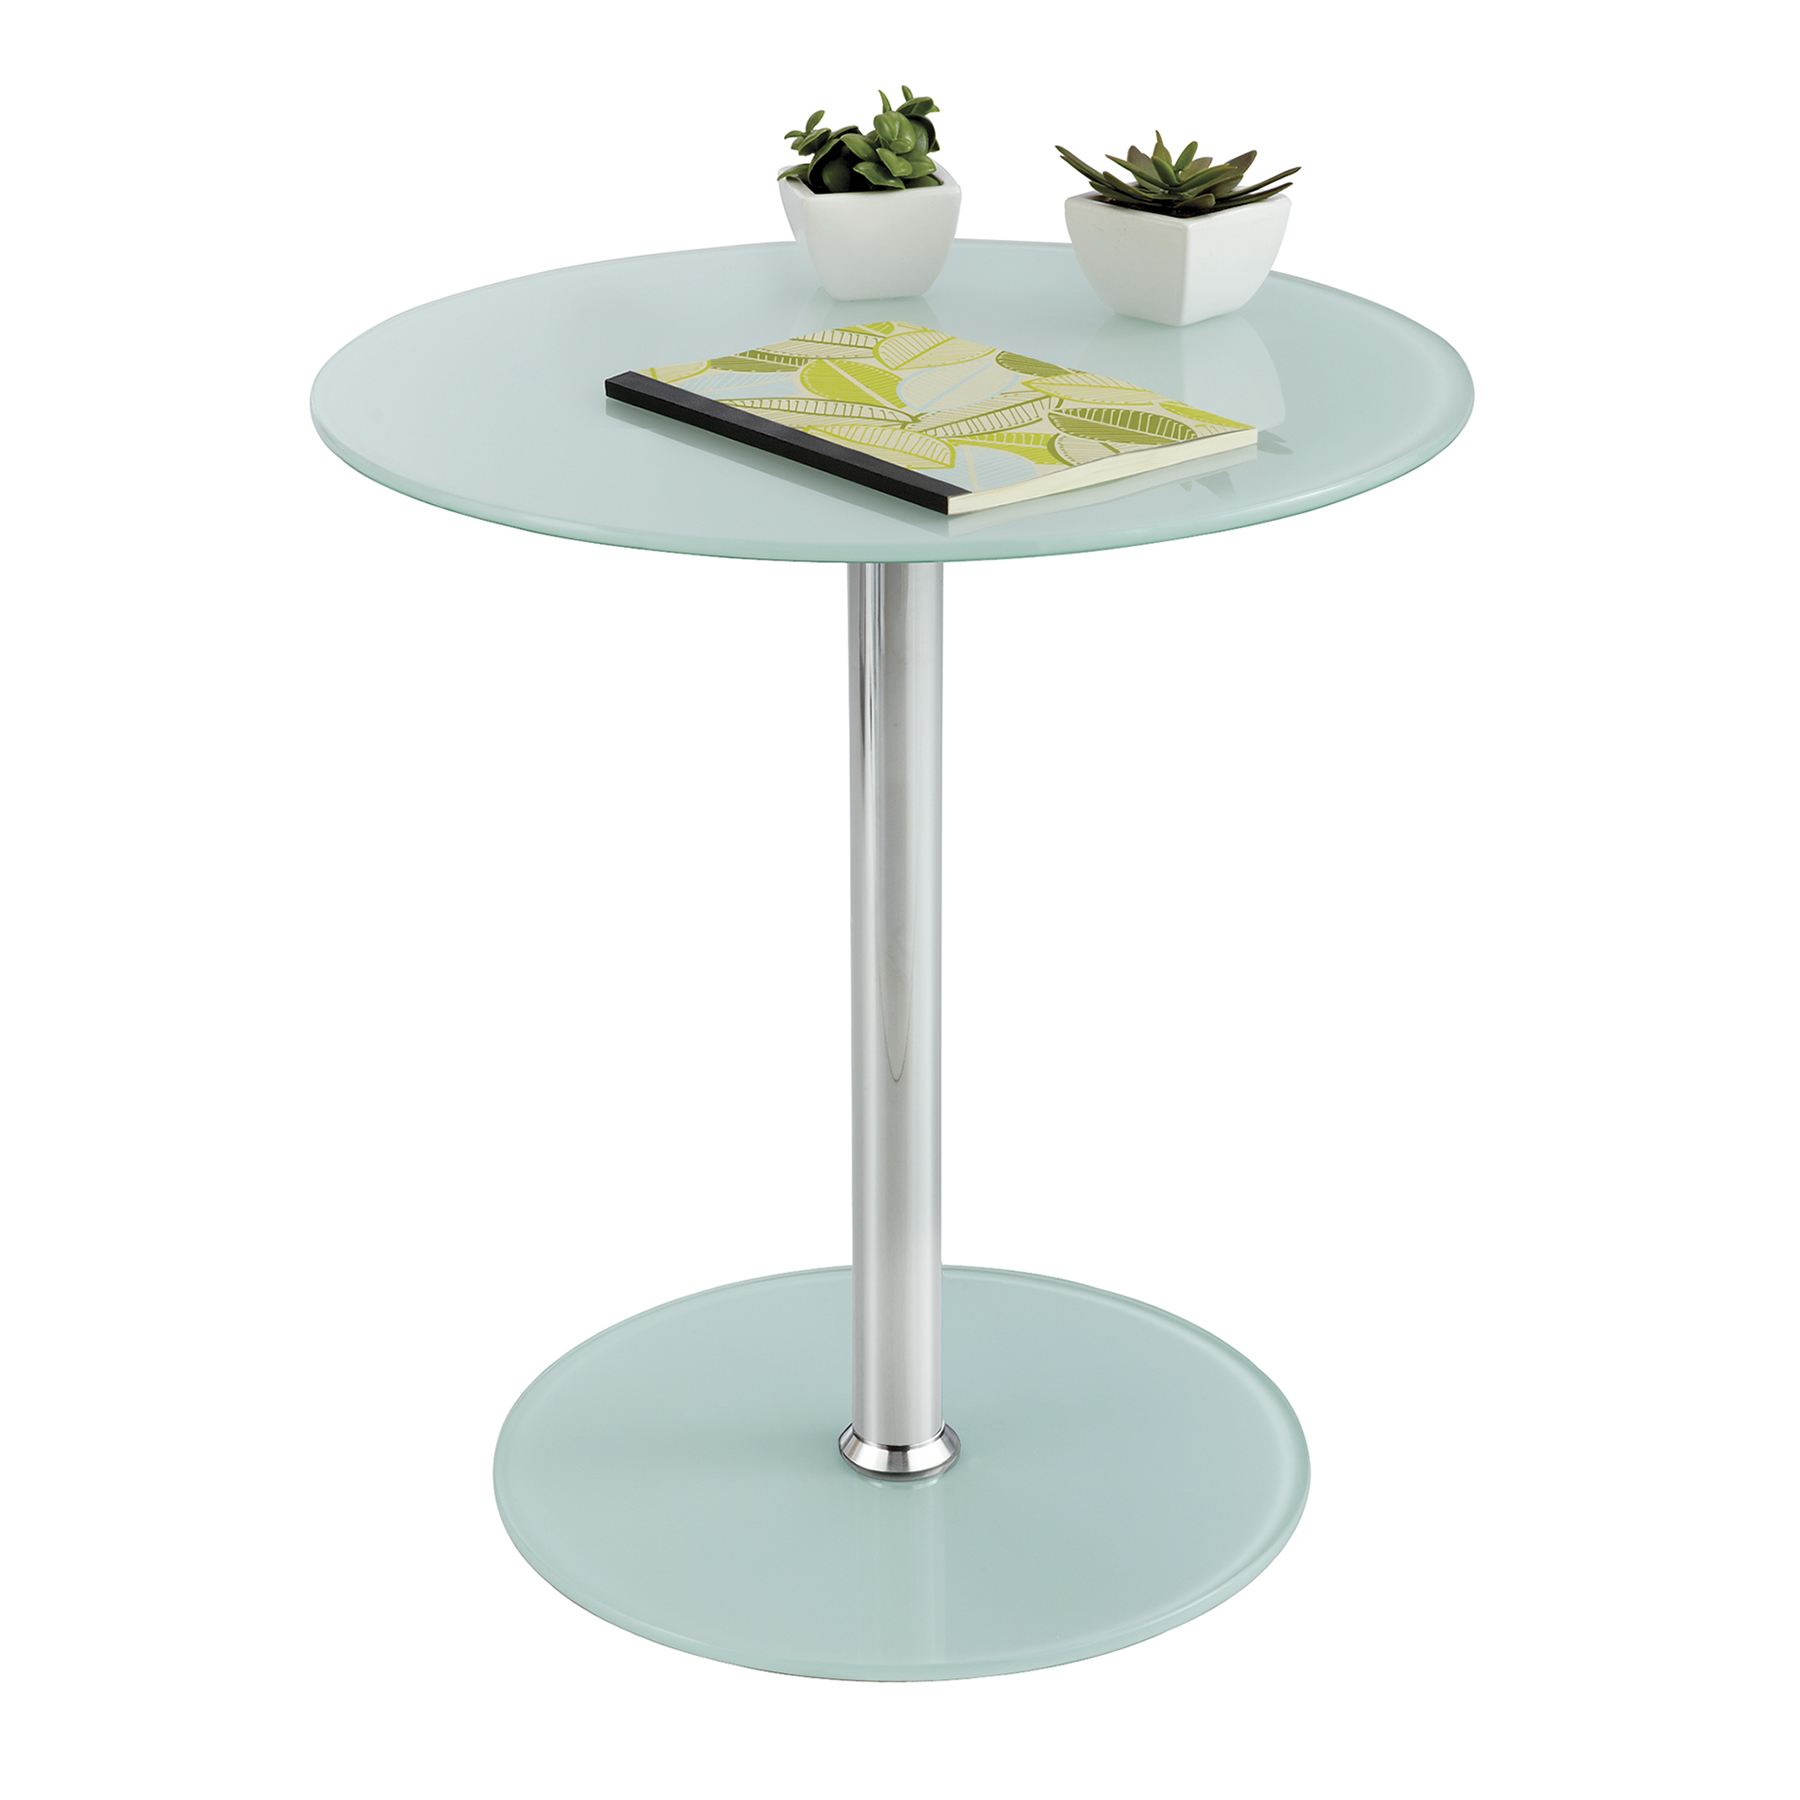 industrial accent table design ideas metal virgil safco products sliding door console bridal shower basket ikea dining and chairs storage cabinets rustic coffee inch tablecloth